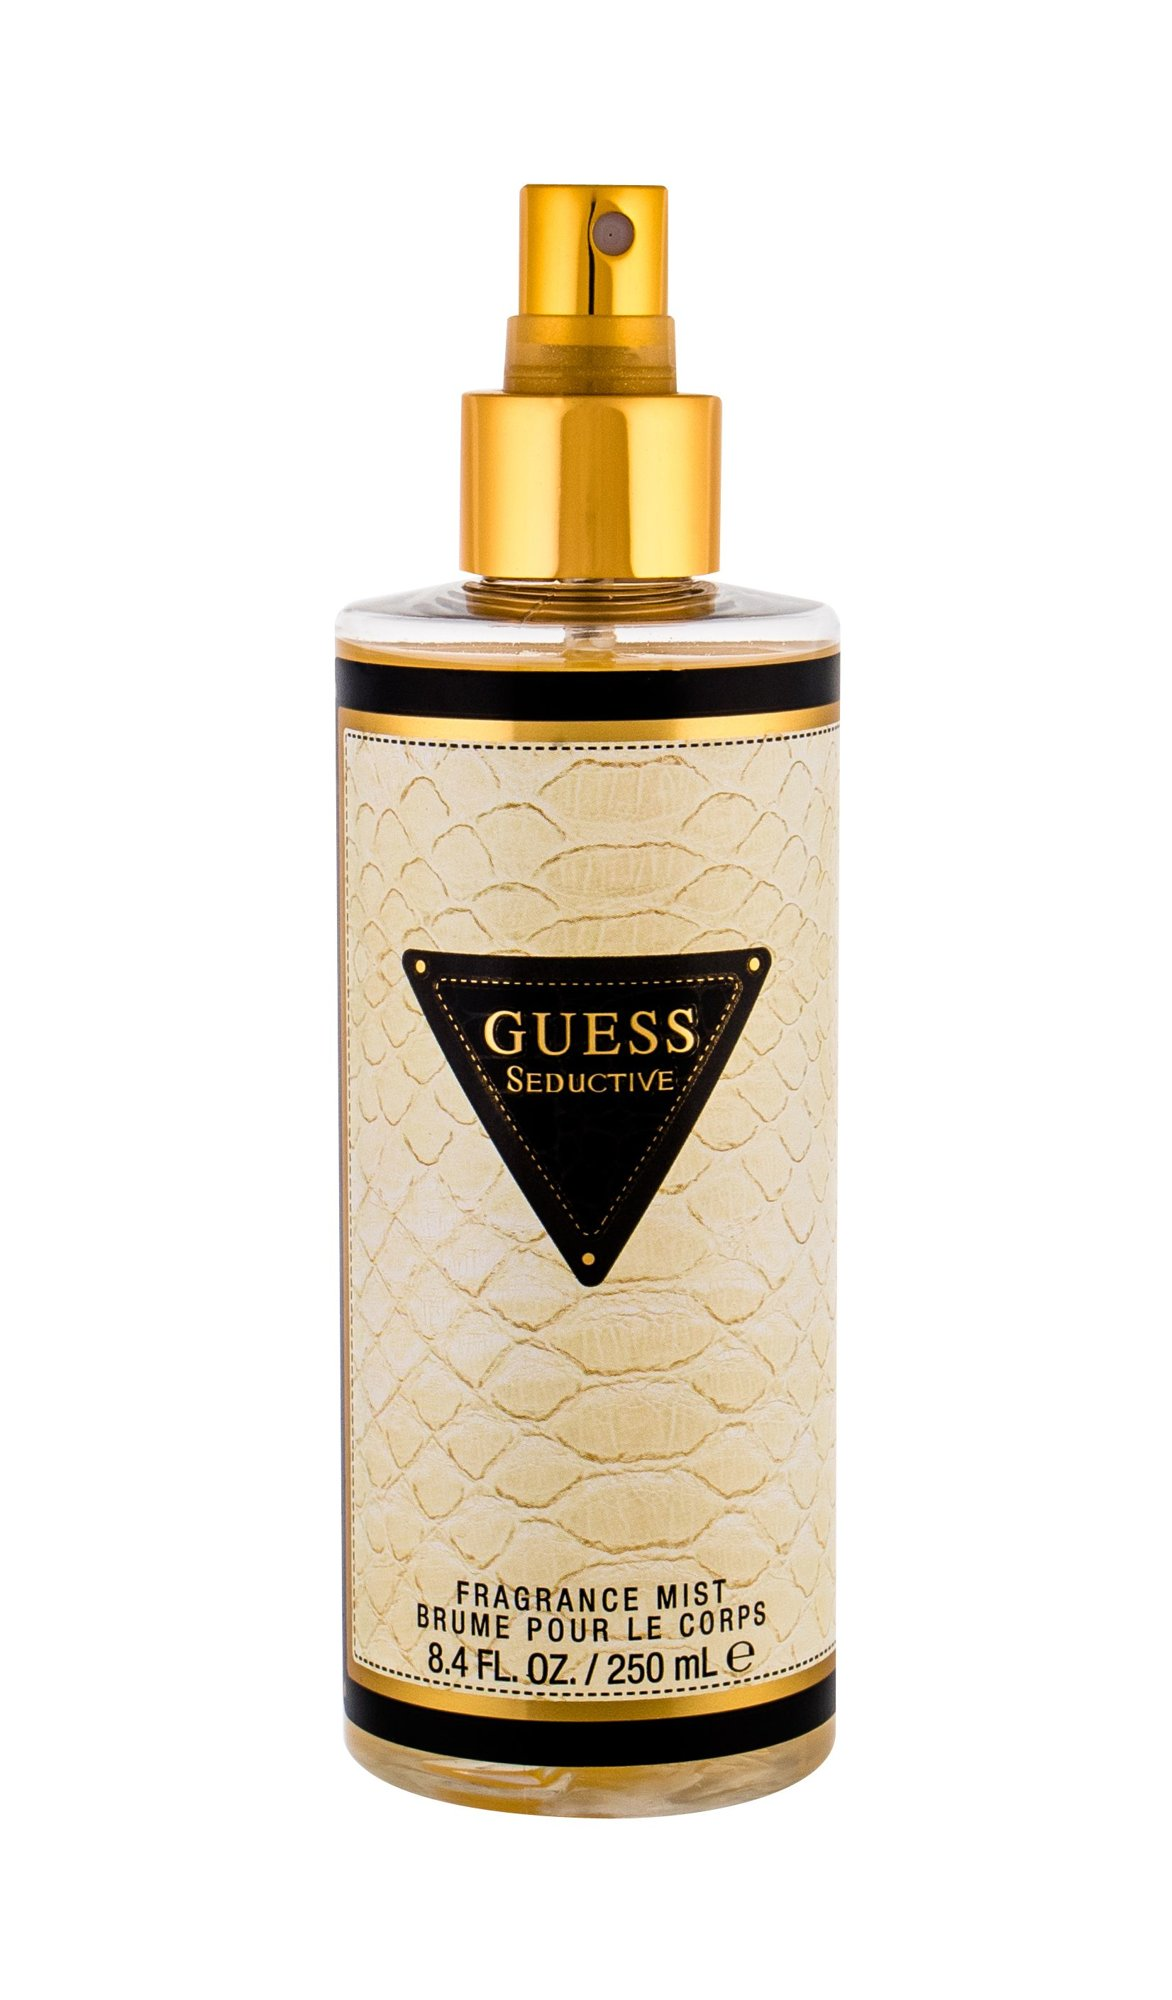 GUESS Seductive Body Spray 250ml